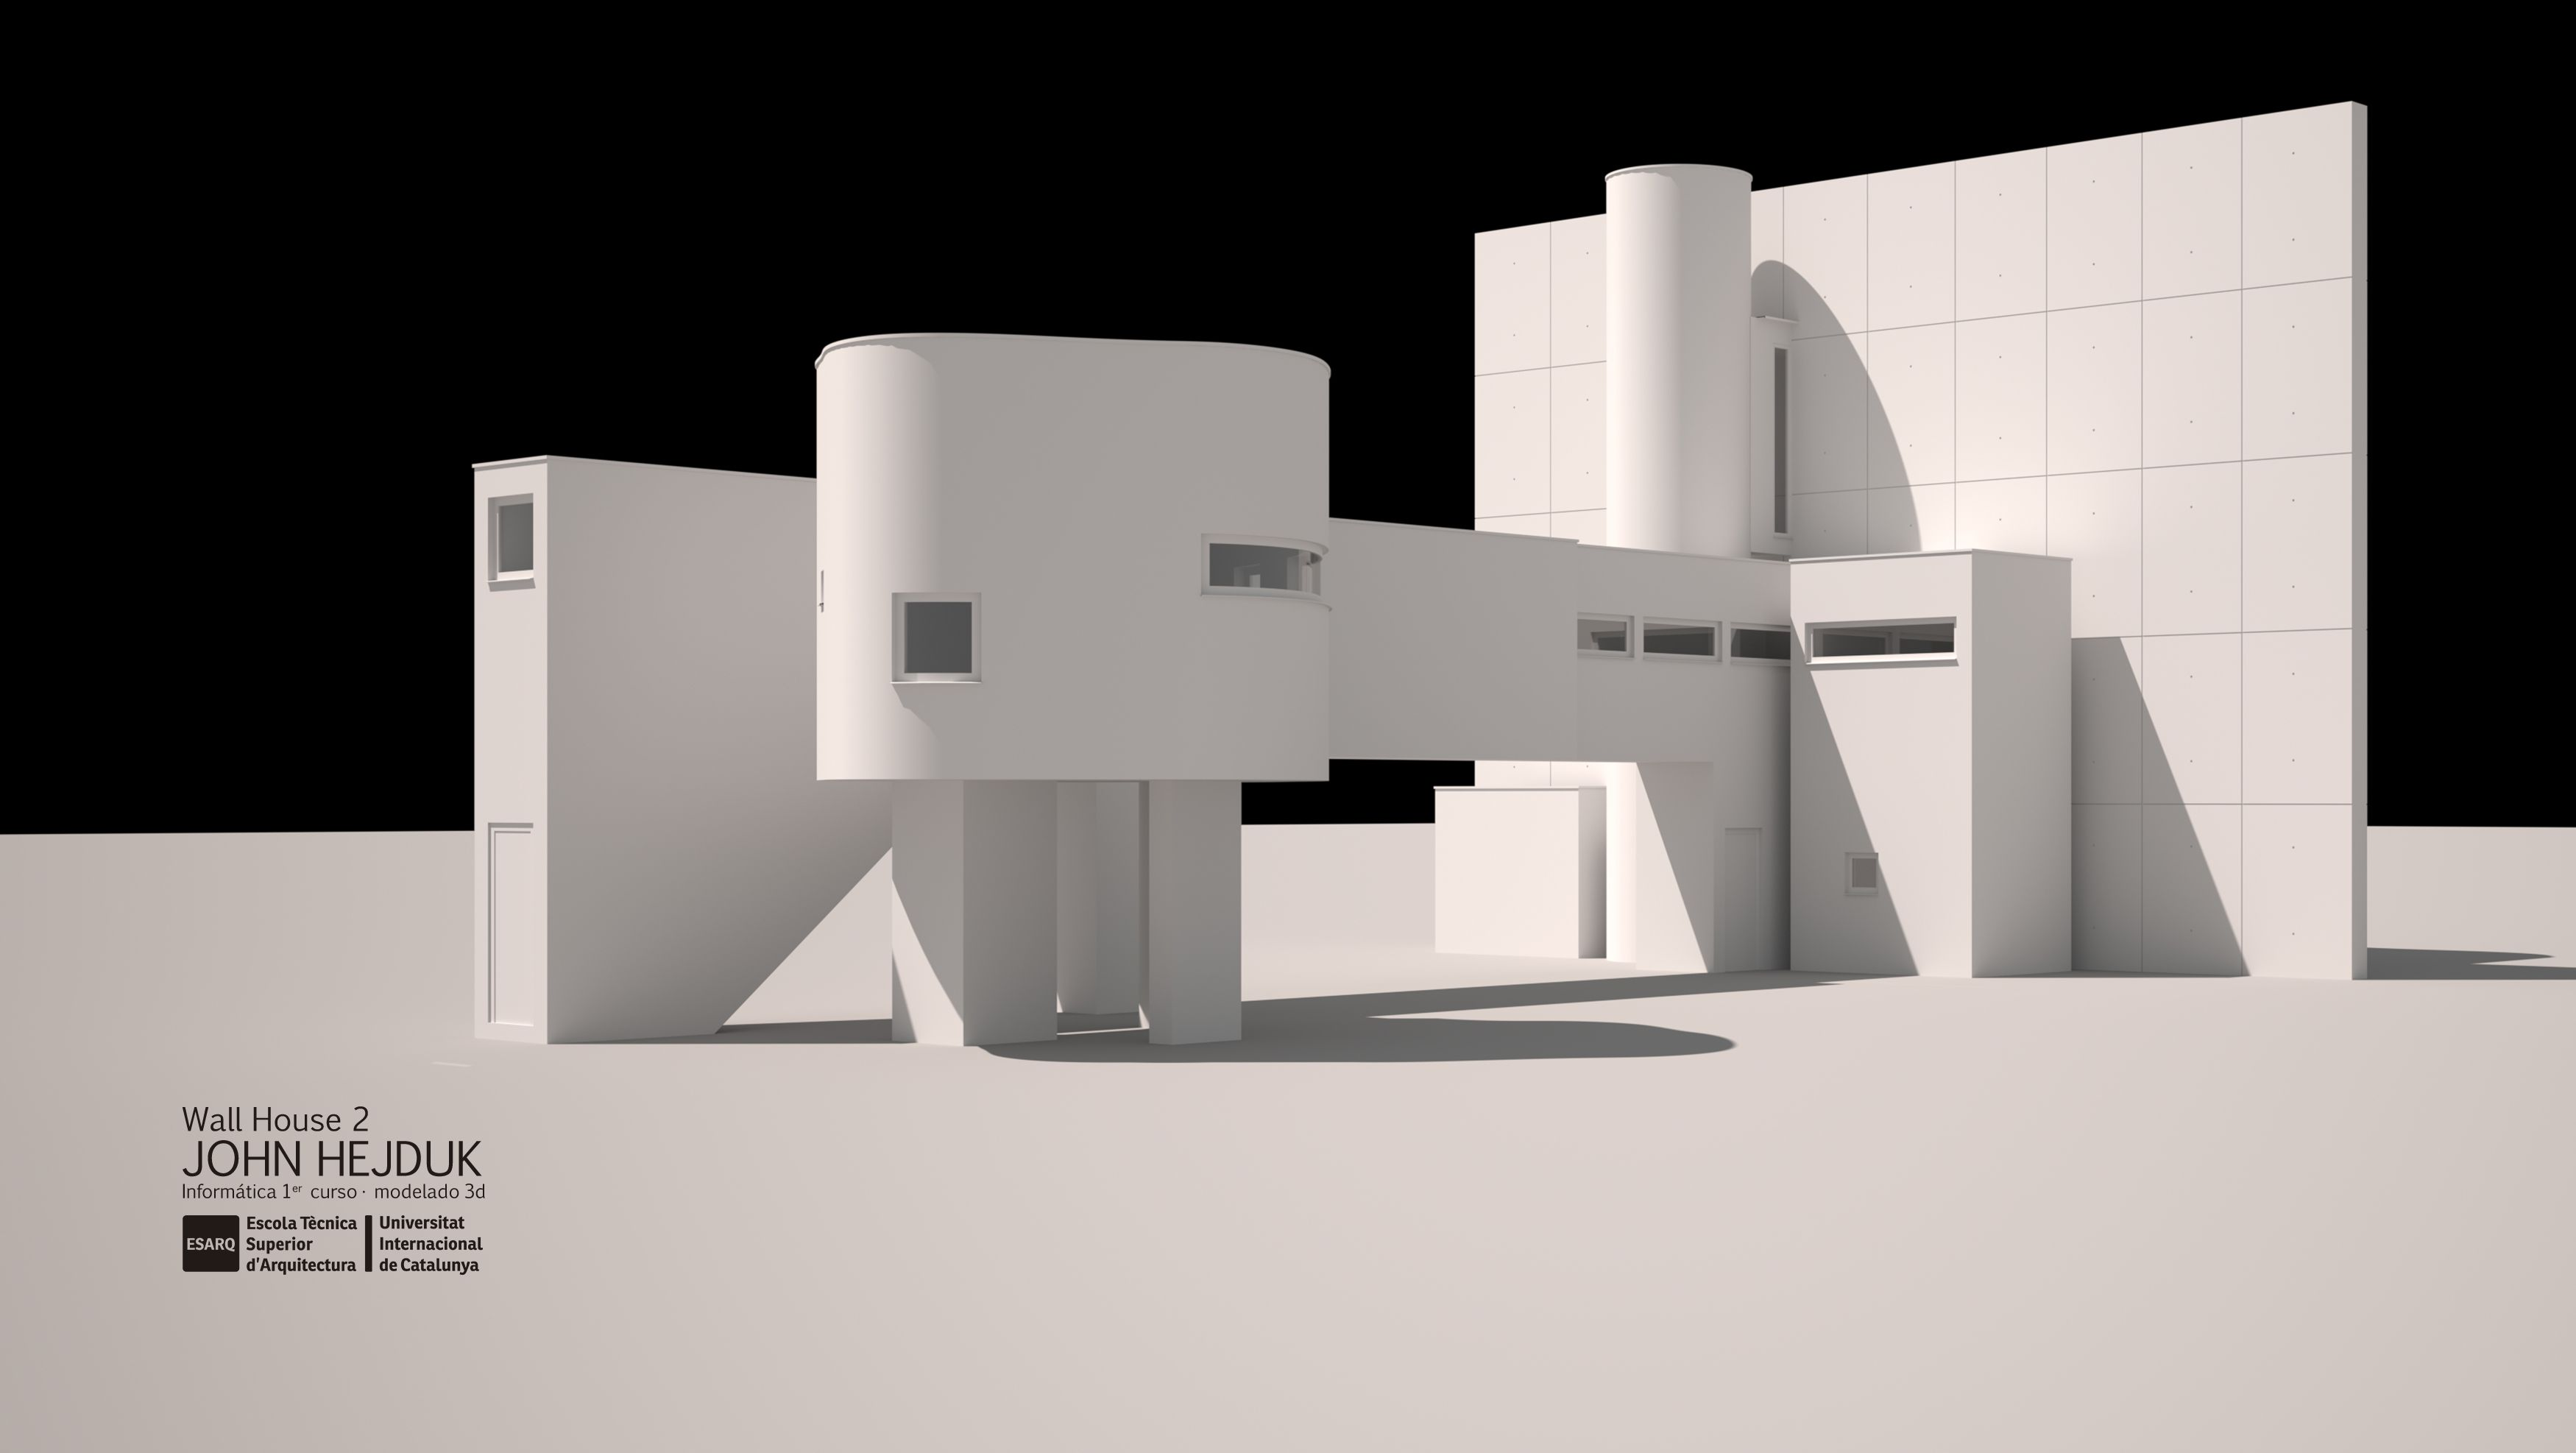 Wall House 2 : John Hejduk | Official blog of ESARQ-UIC Barcelona School of